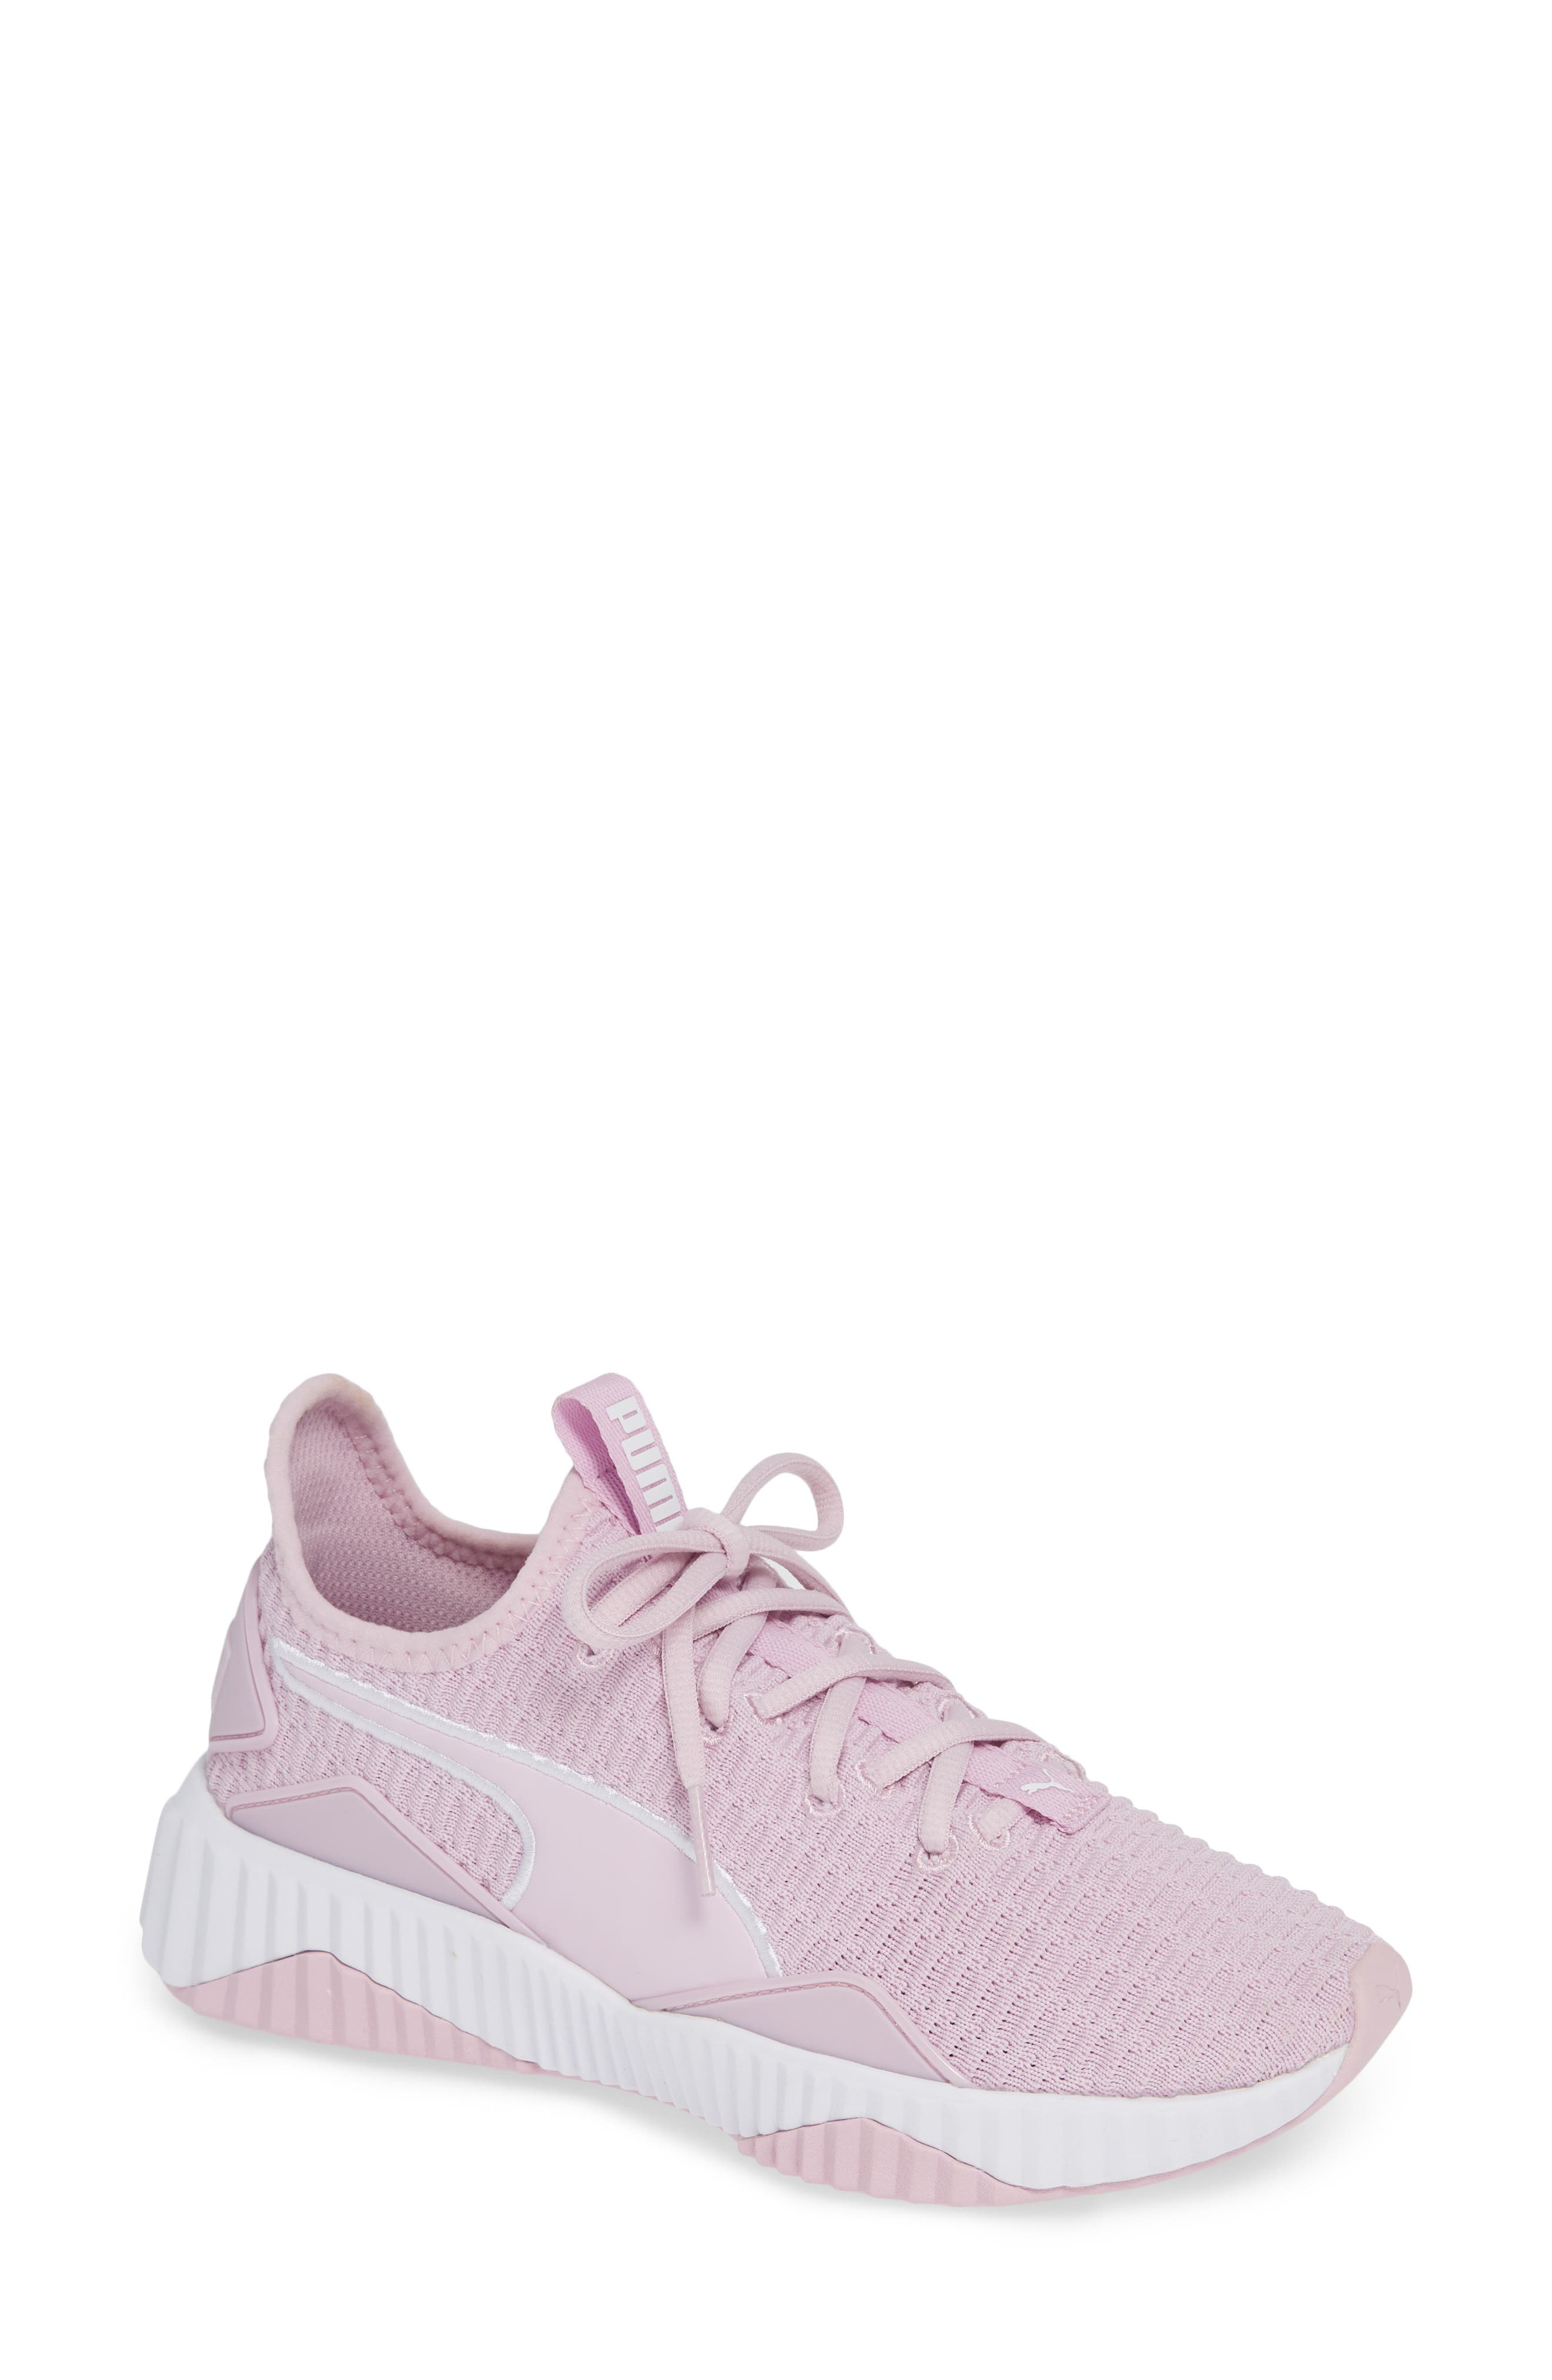 Defy Sneaker,                             Main thumbnail 1, color,                             WINSOME ORCHID/ PUMA WHITE